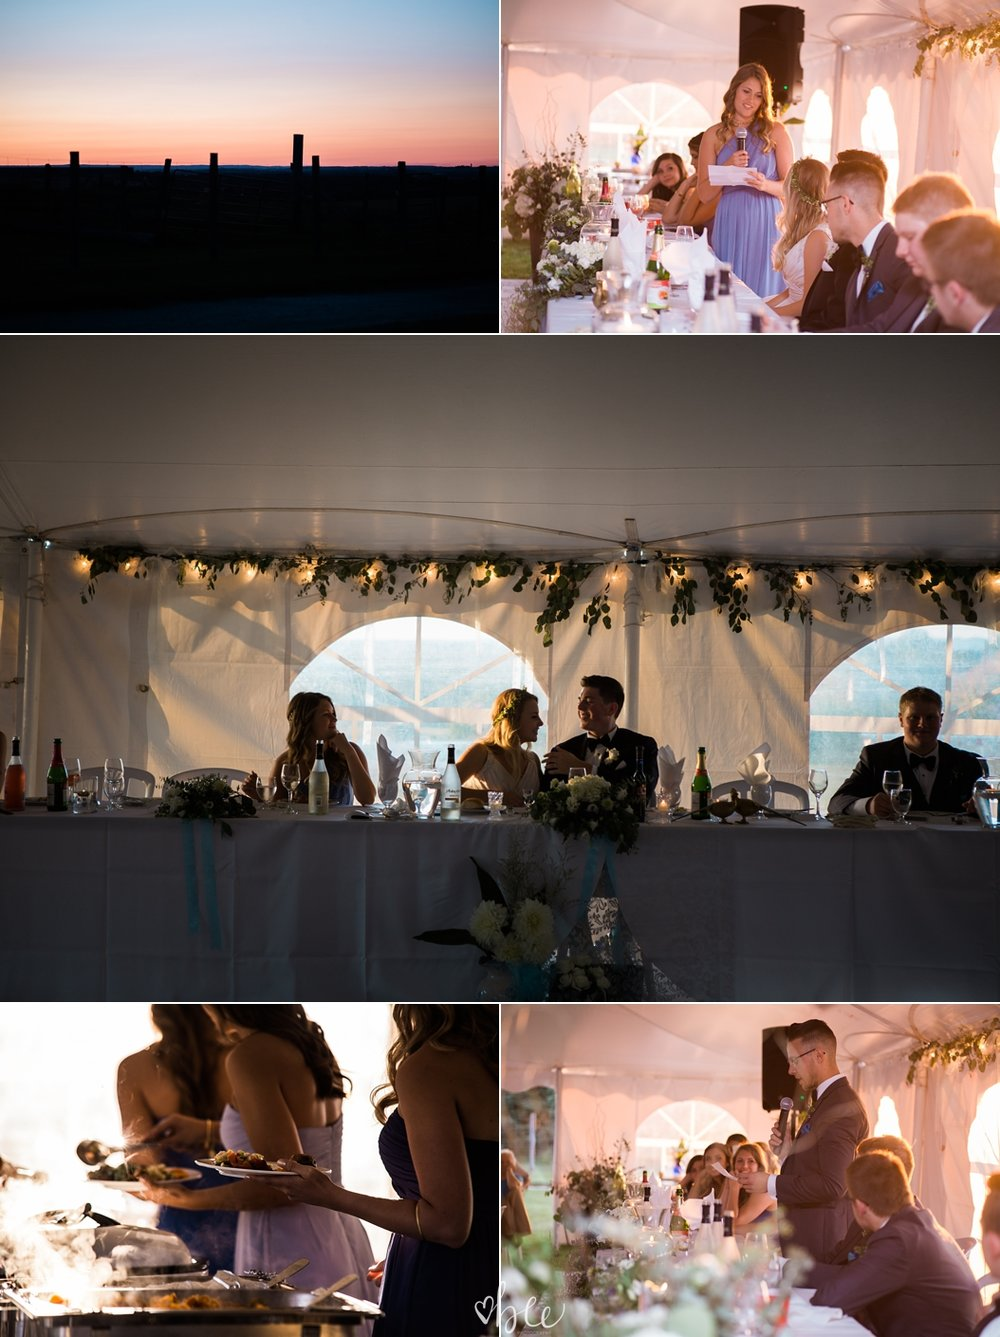 Tottenham Outdoor Summer Wedding  (158 of 231).jpg